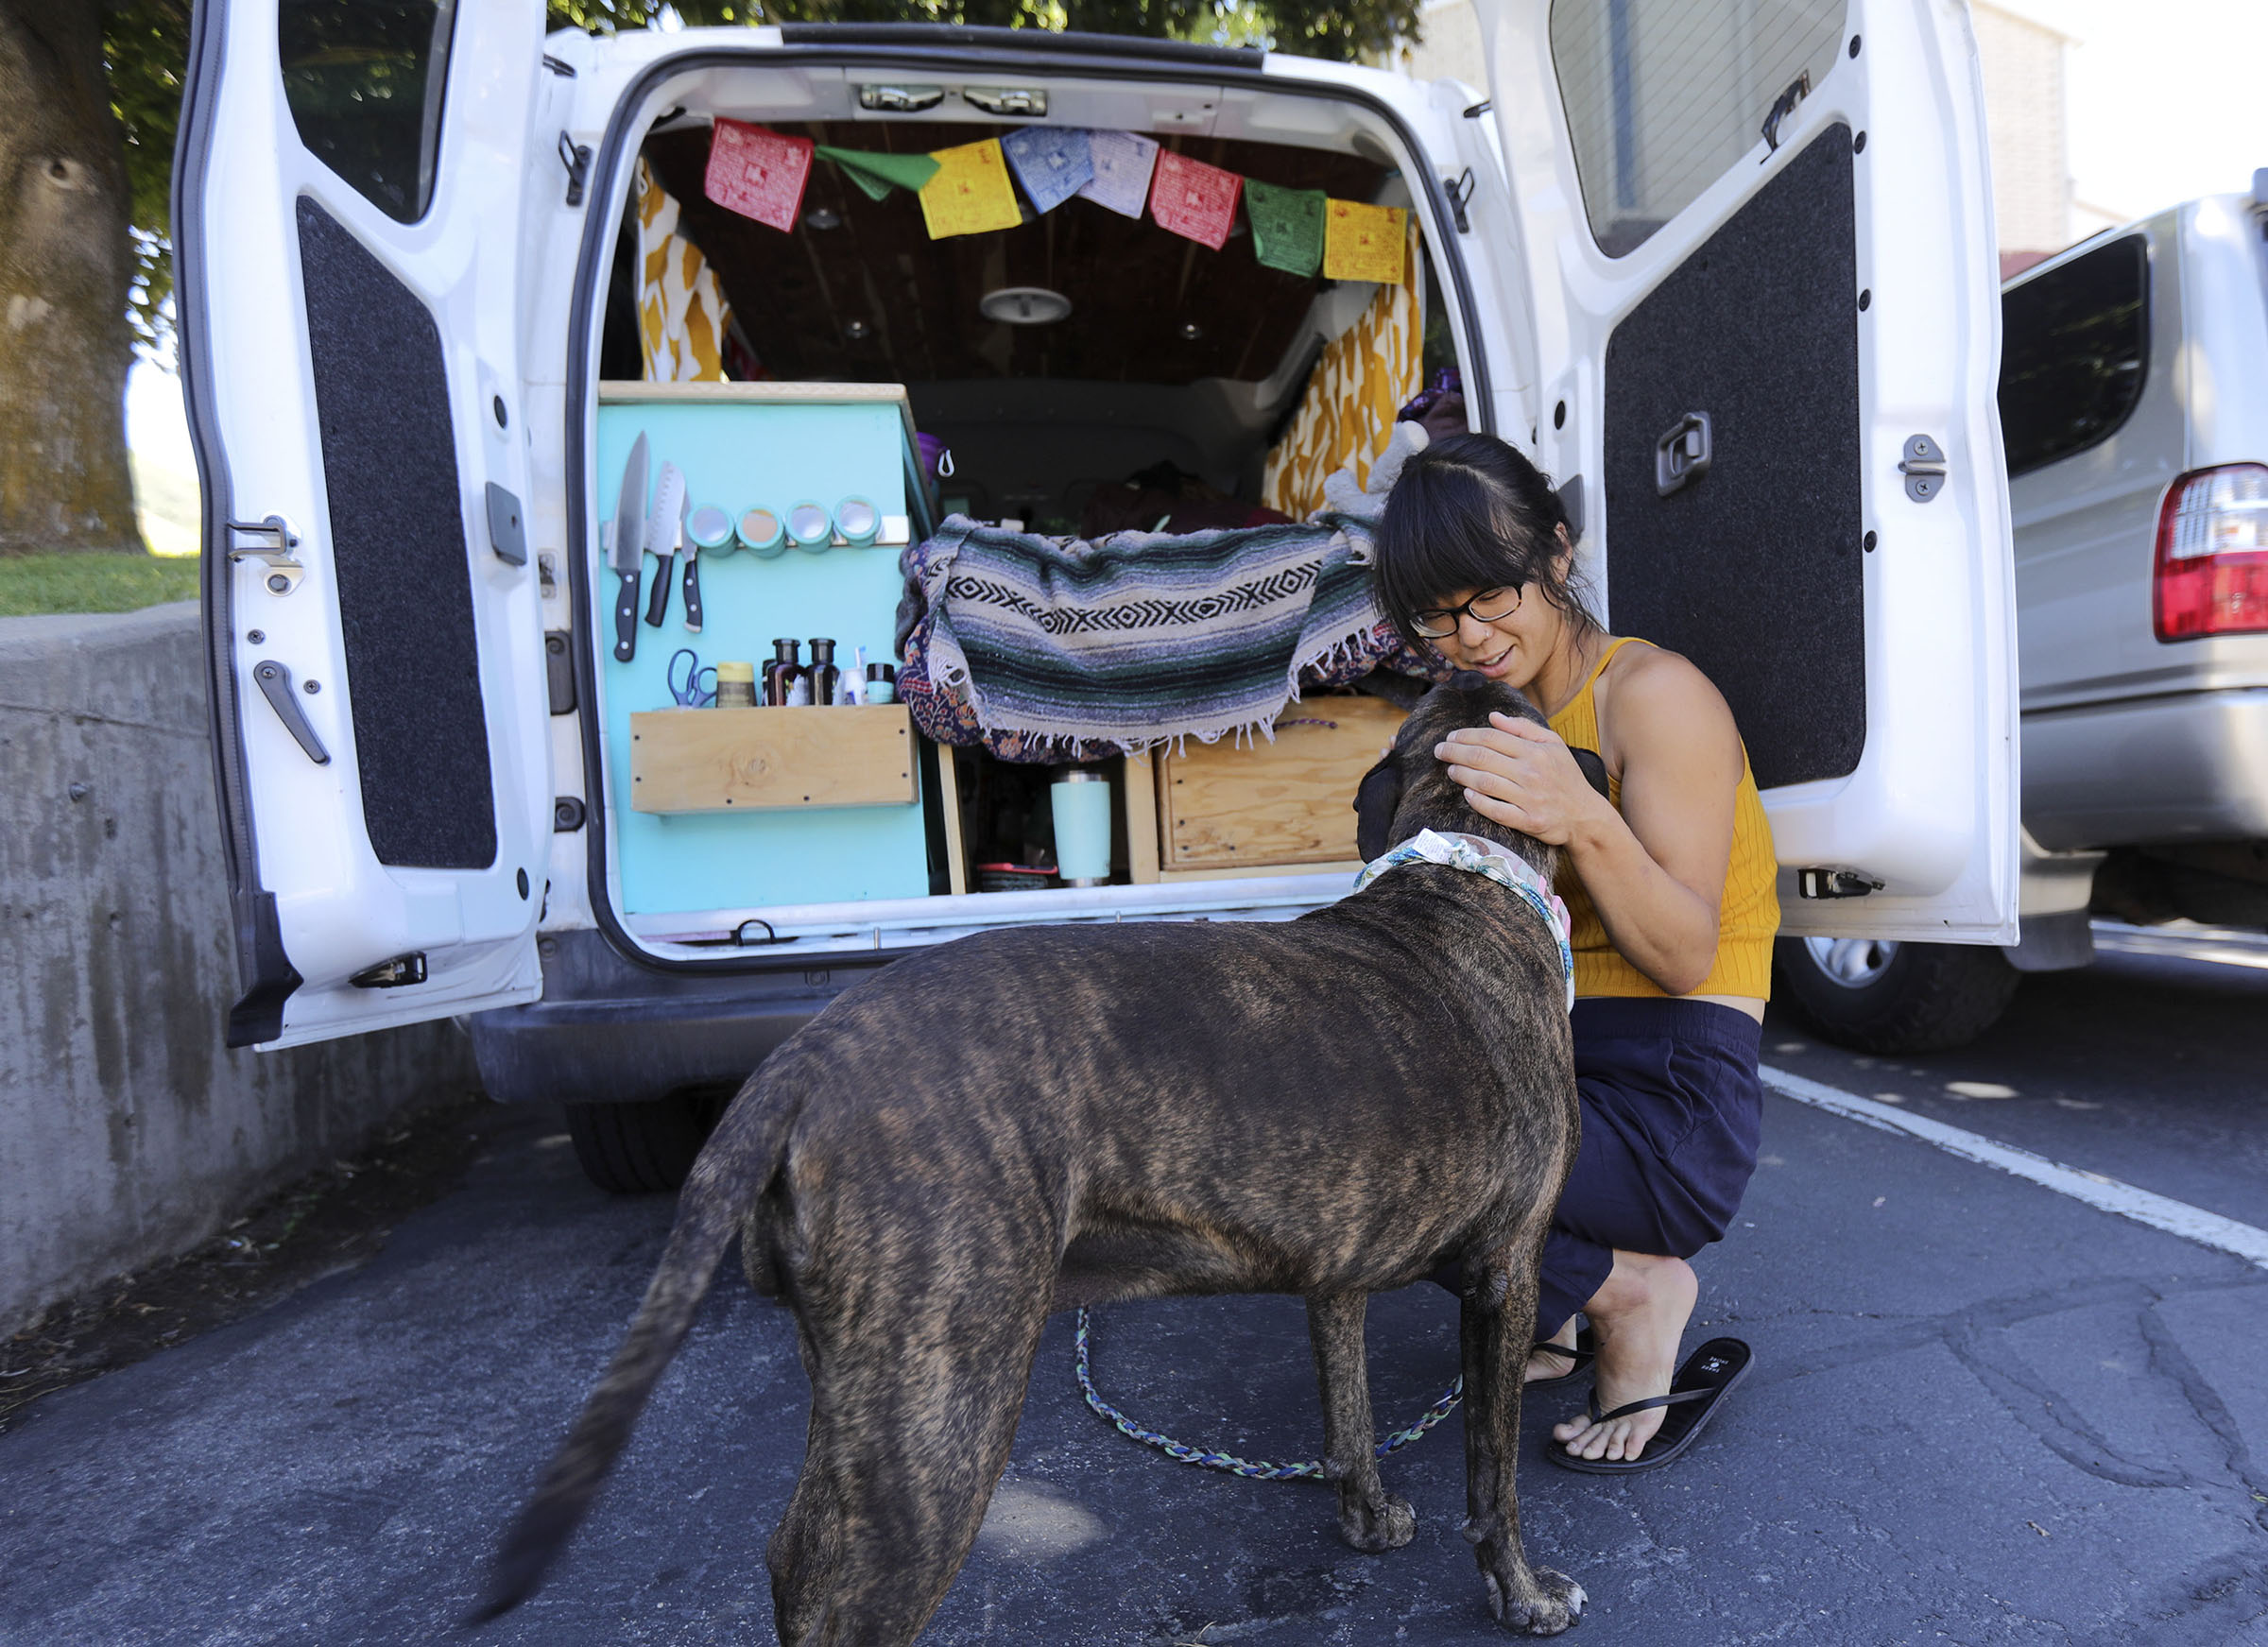 Kathy Karlo pets her dog Shooter McGavin outside of her van, where she is currently living, in Cottonwood Heigh on Tuesday, July 2, 2019.